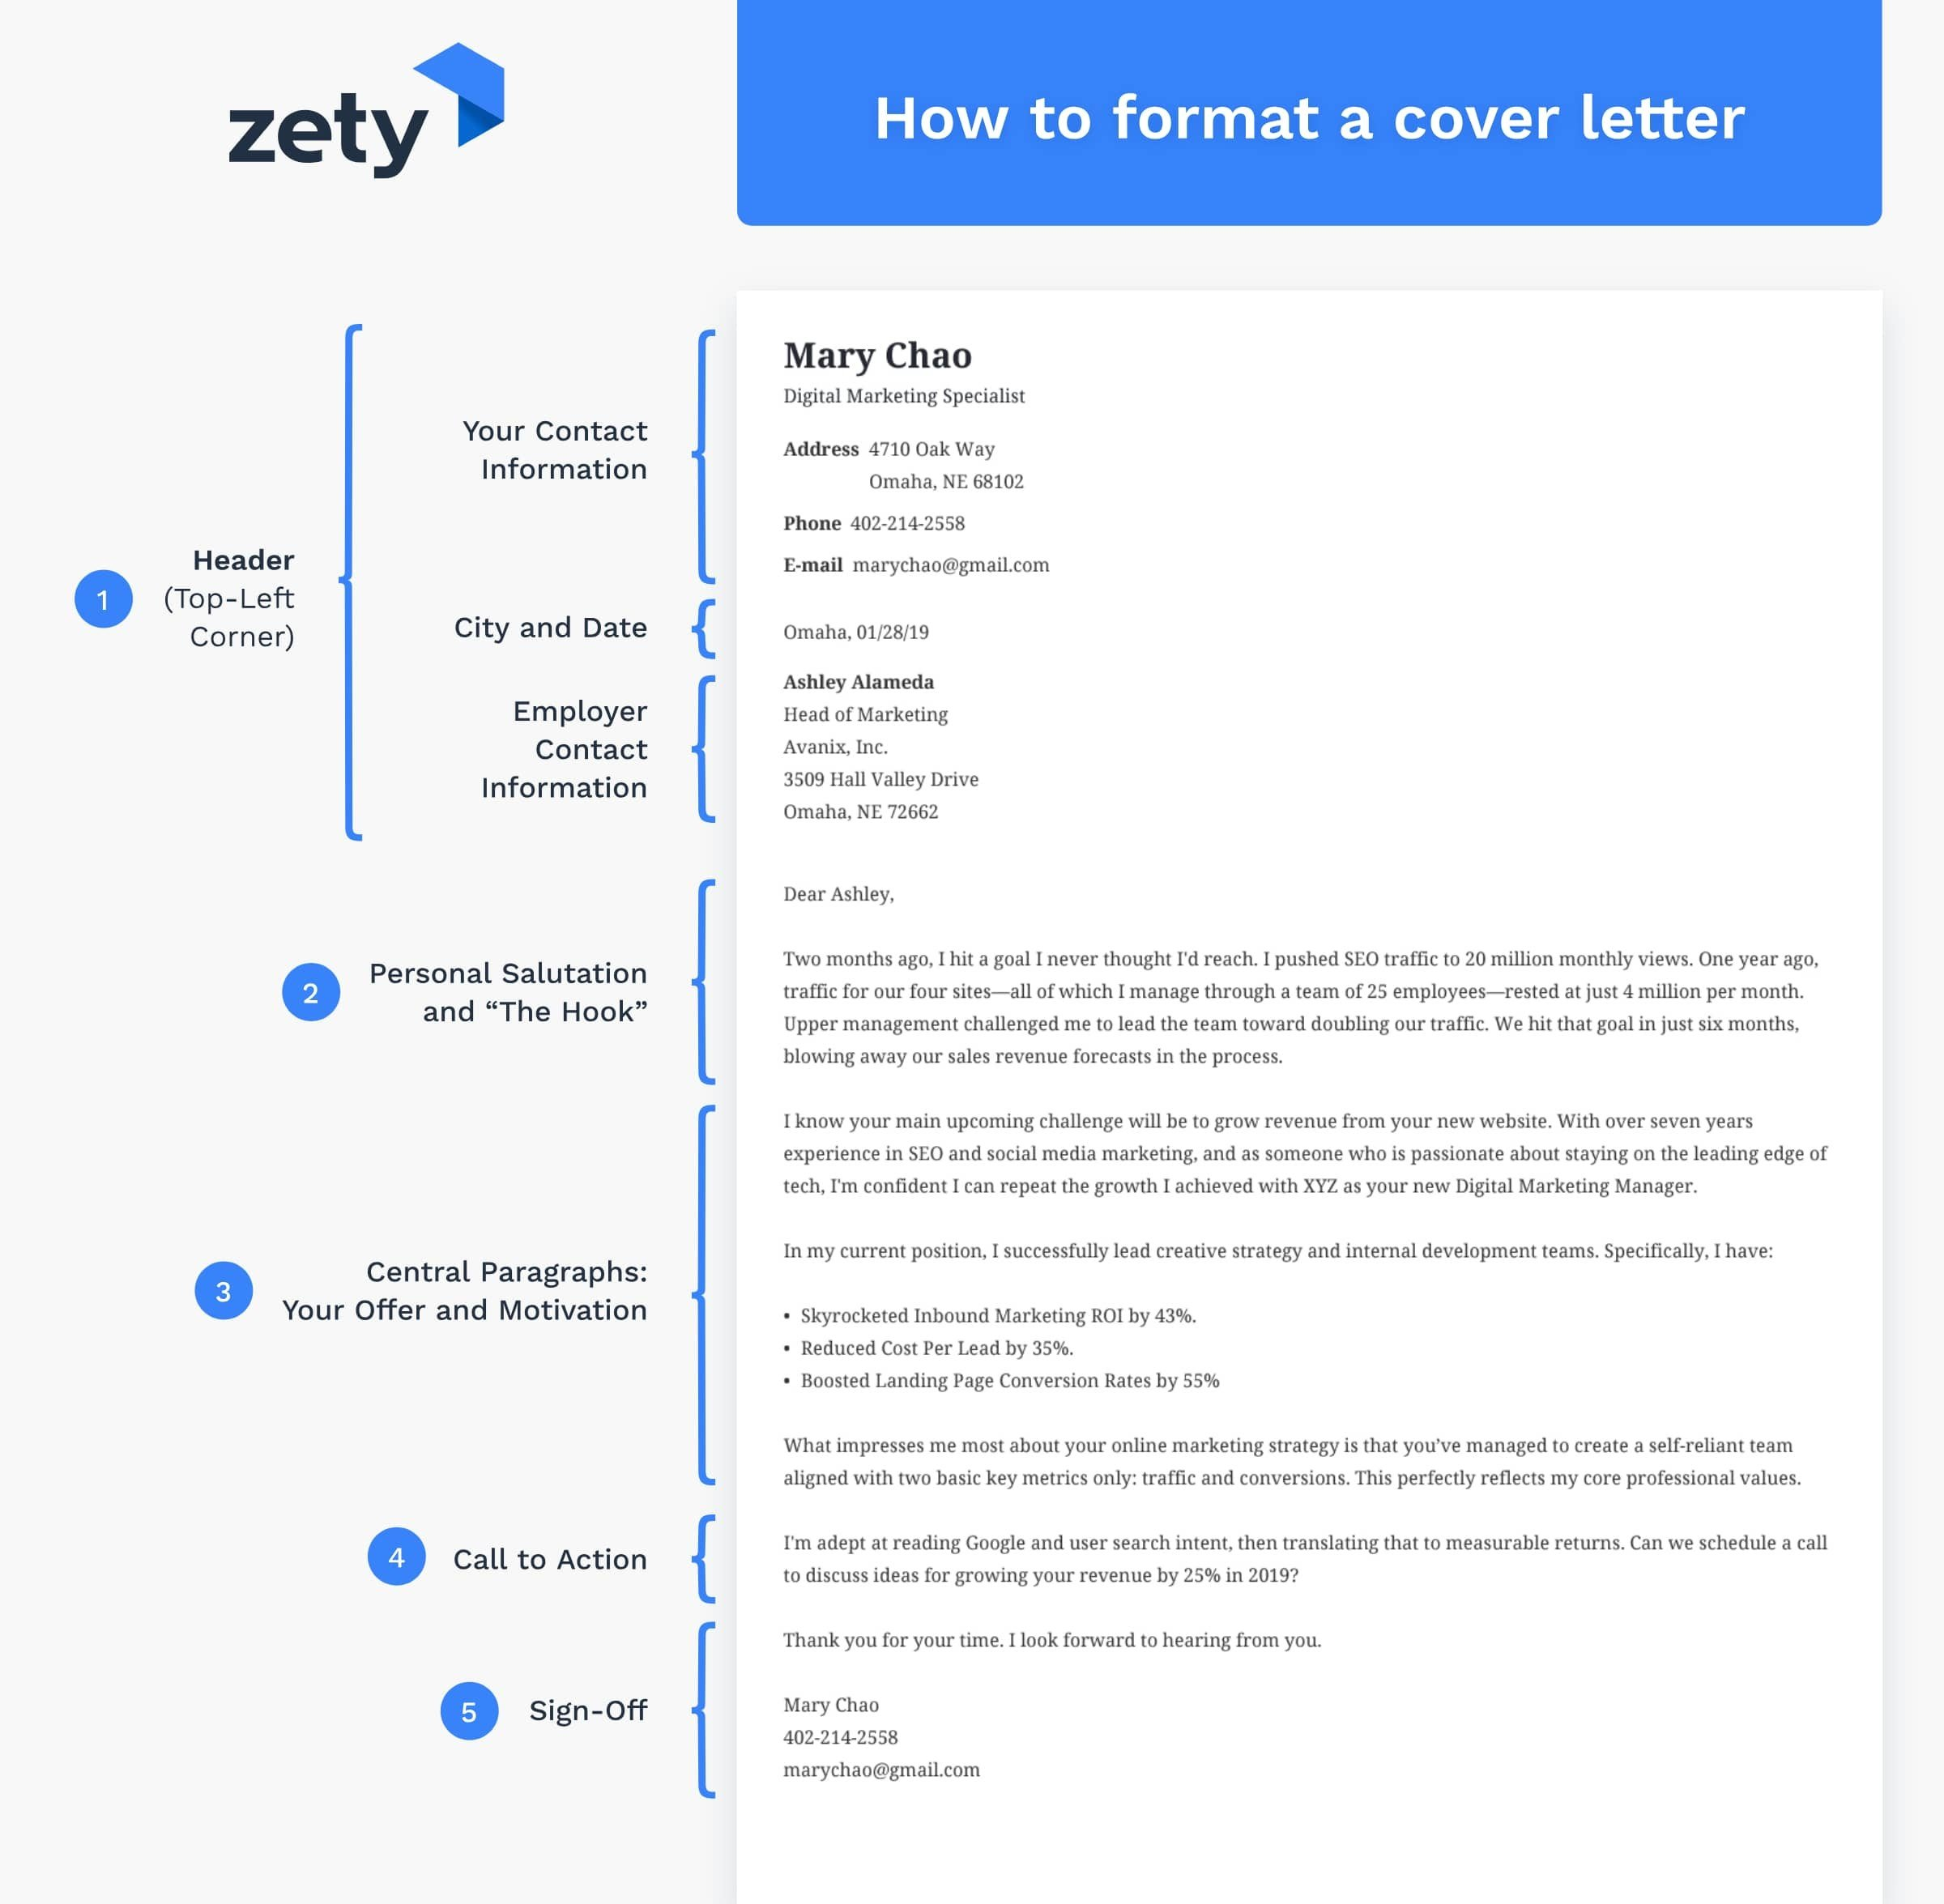 Cover Letter Format: Templates, Ready to Use Layouts, & 20+ Samples